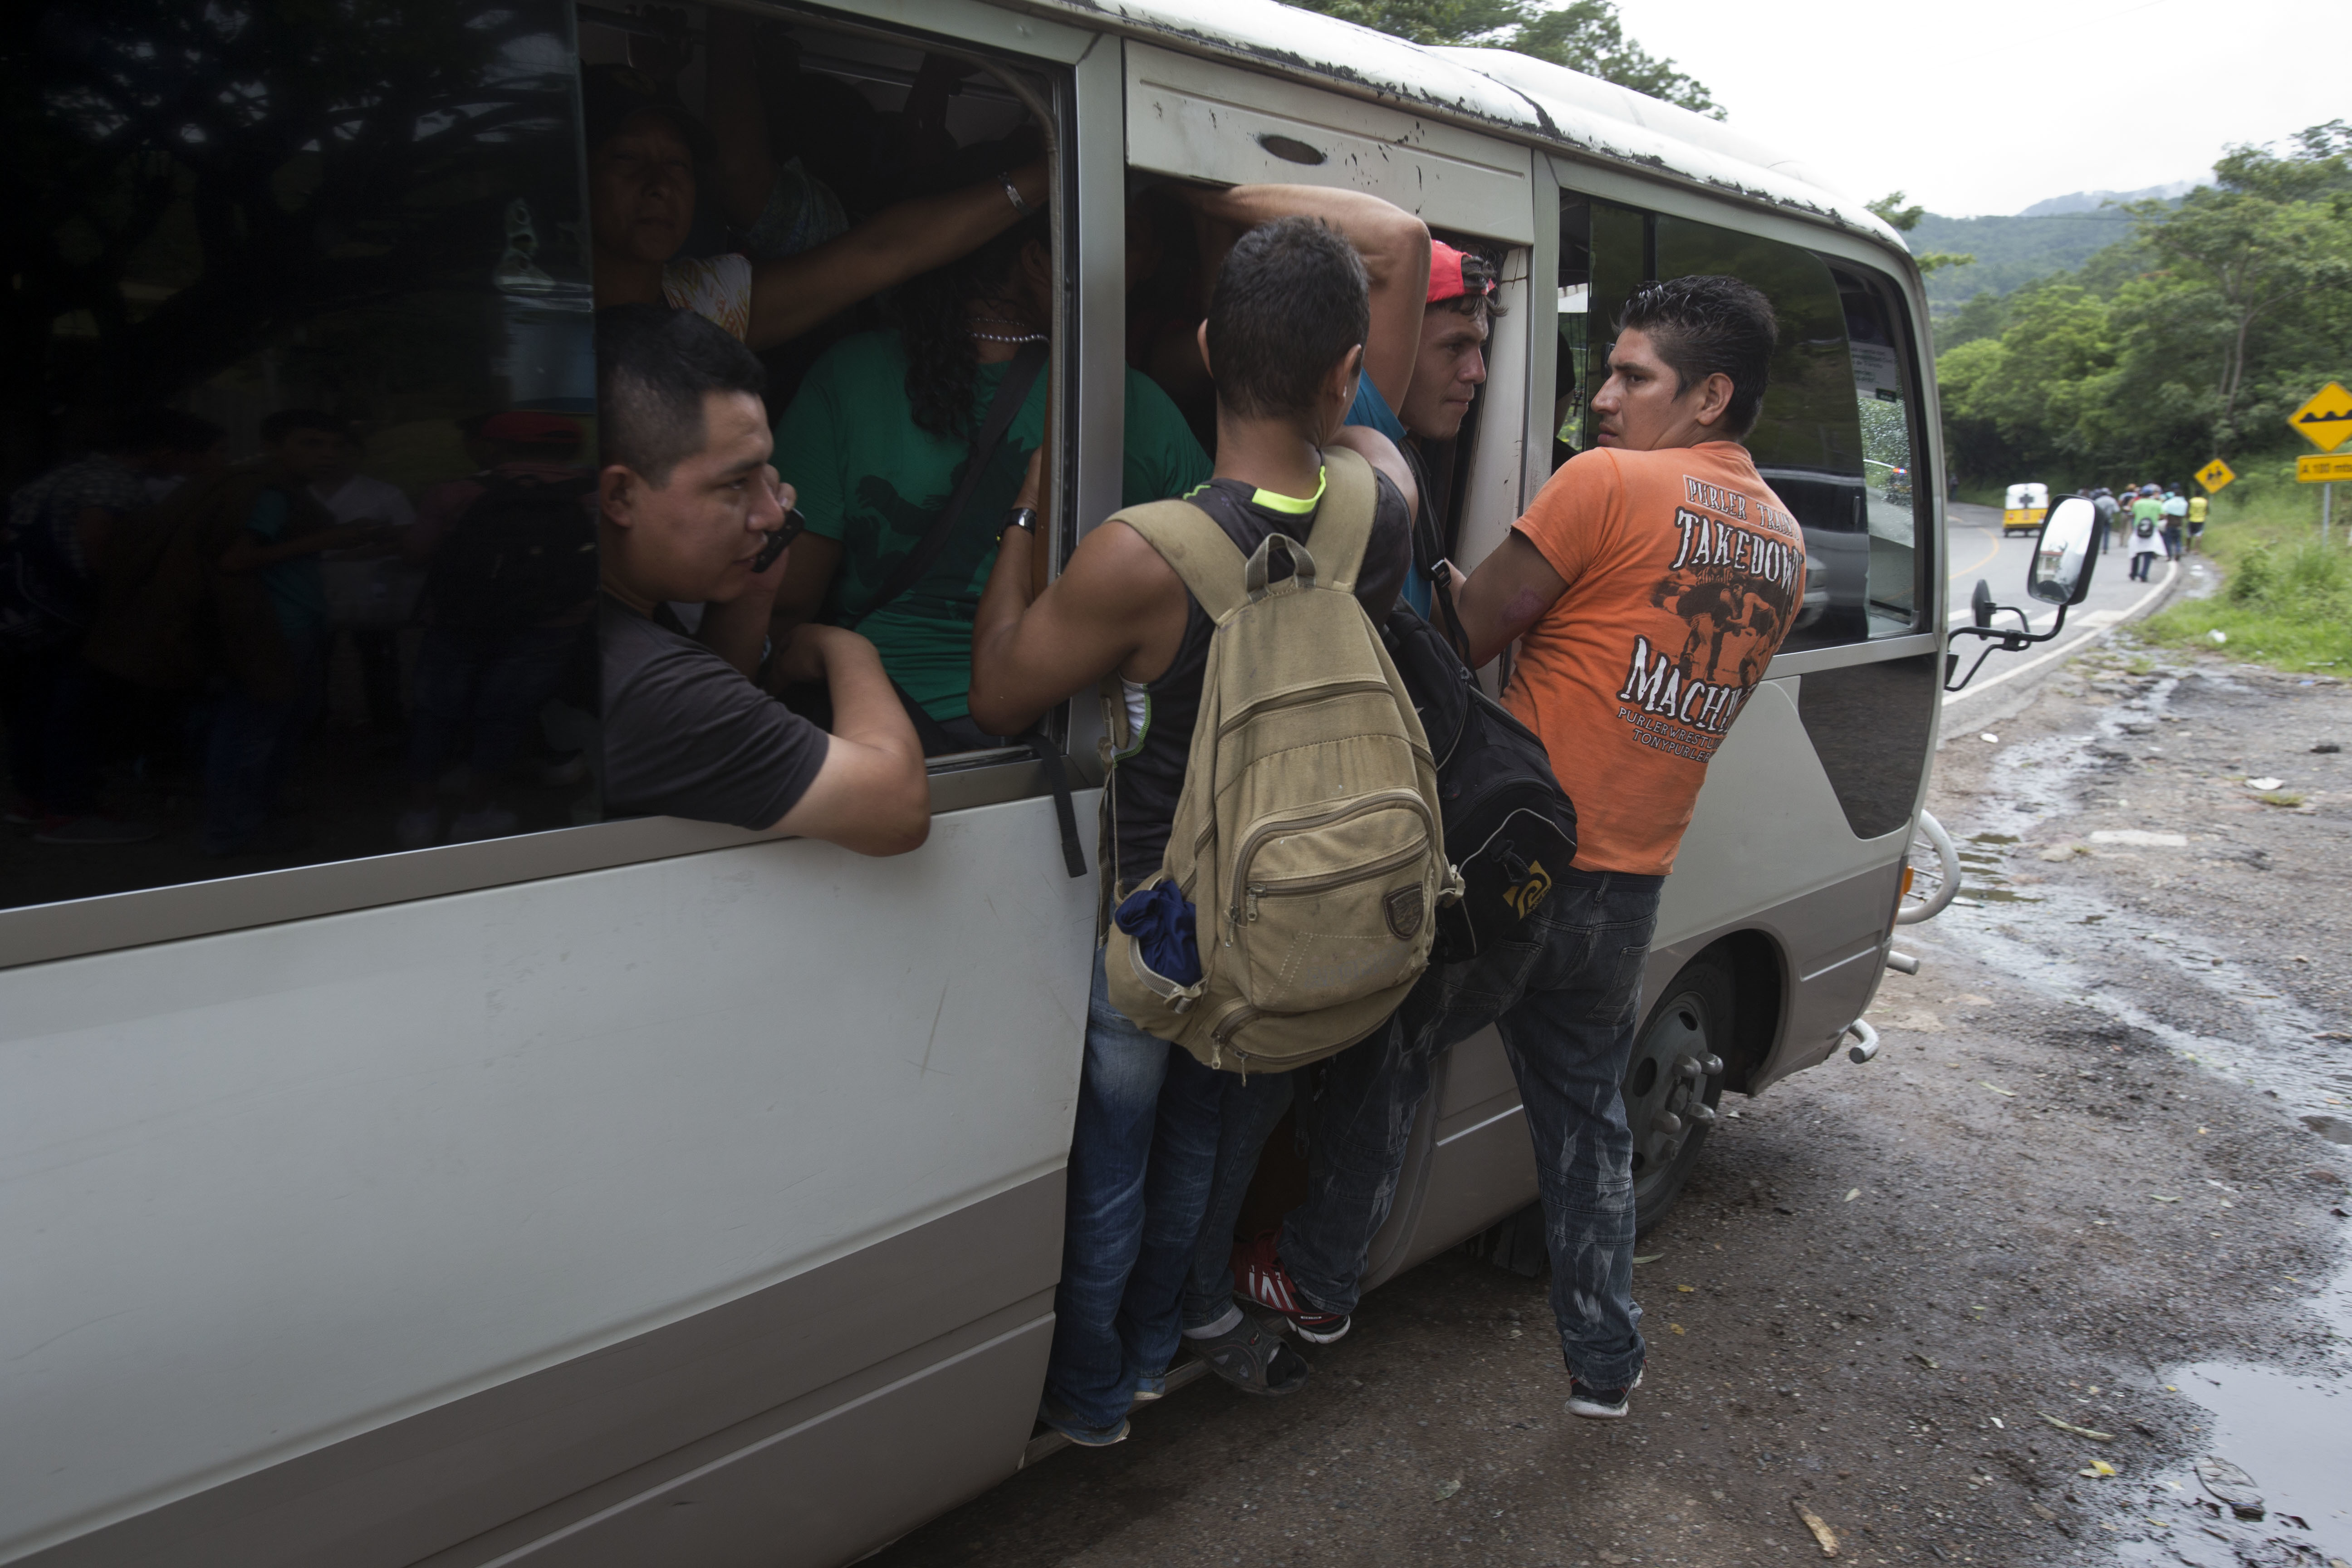 Honduran migrants get a free ride from a driver during their caravan to the U.S., in Chiquimula, Guatemala, Oct. 16, 2018. U.S. President Donald Trump threatened on Tuesday to cut aid to Honduras if it didn't stop the impromptu caravan of migrants.